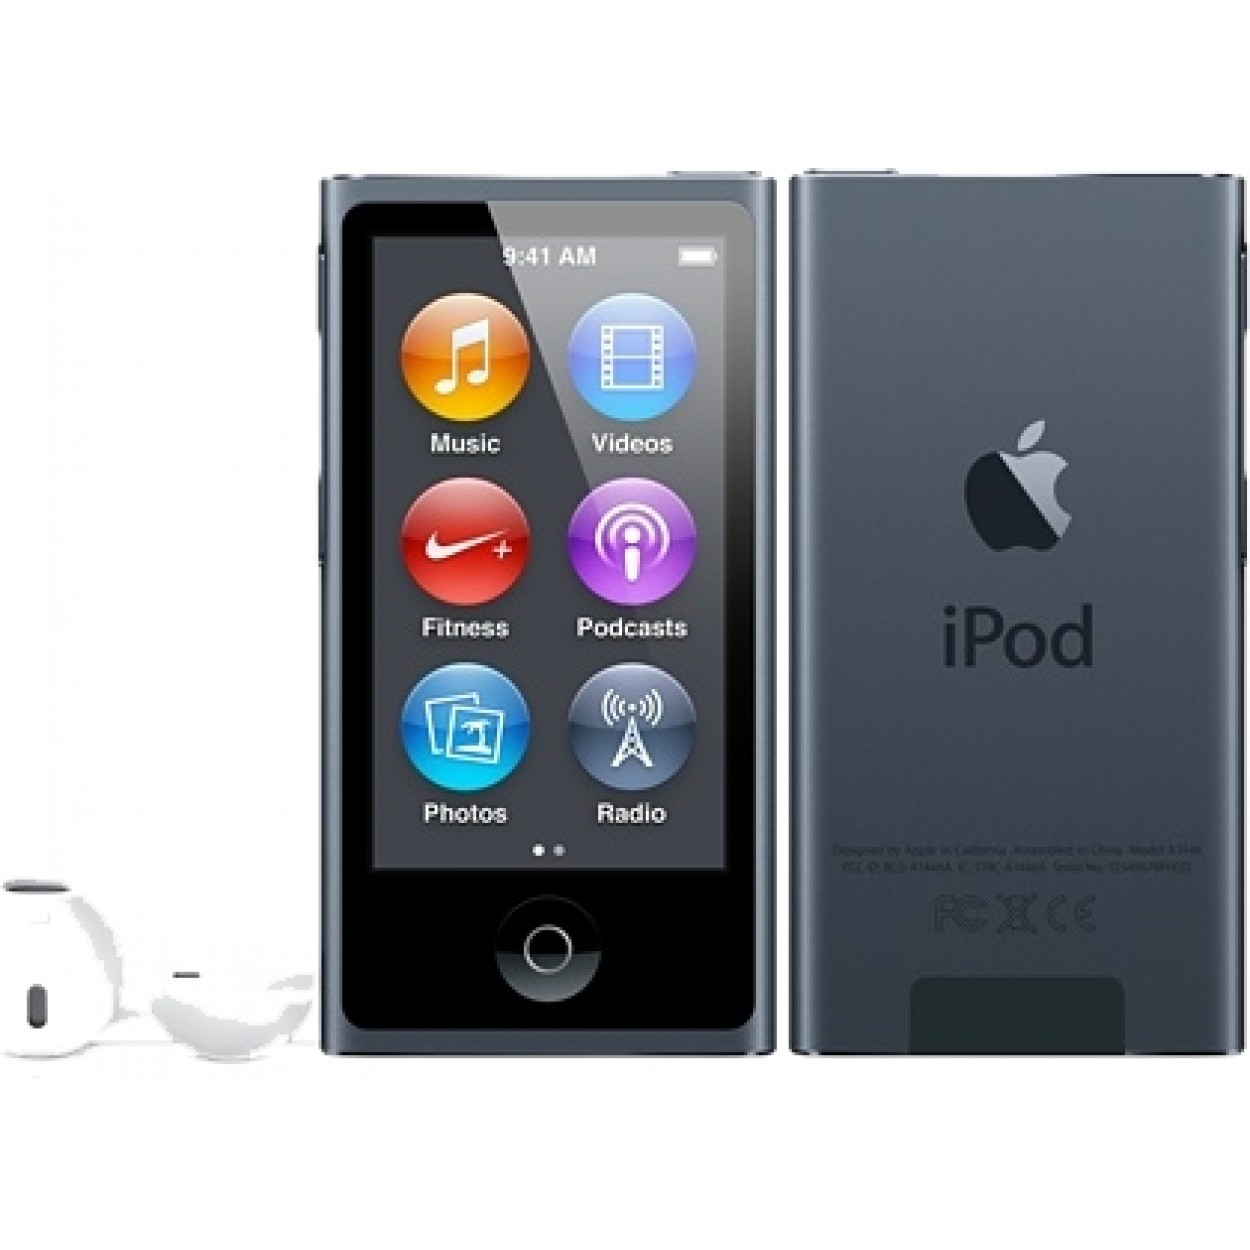 ipod nano 7th generation wallpaper wallpapersafari. Black Bedroom Furniture Sets. Home Design Ideas